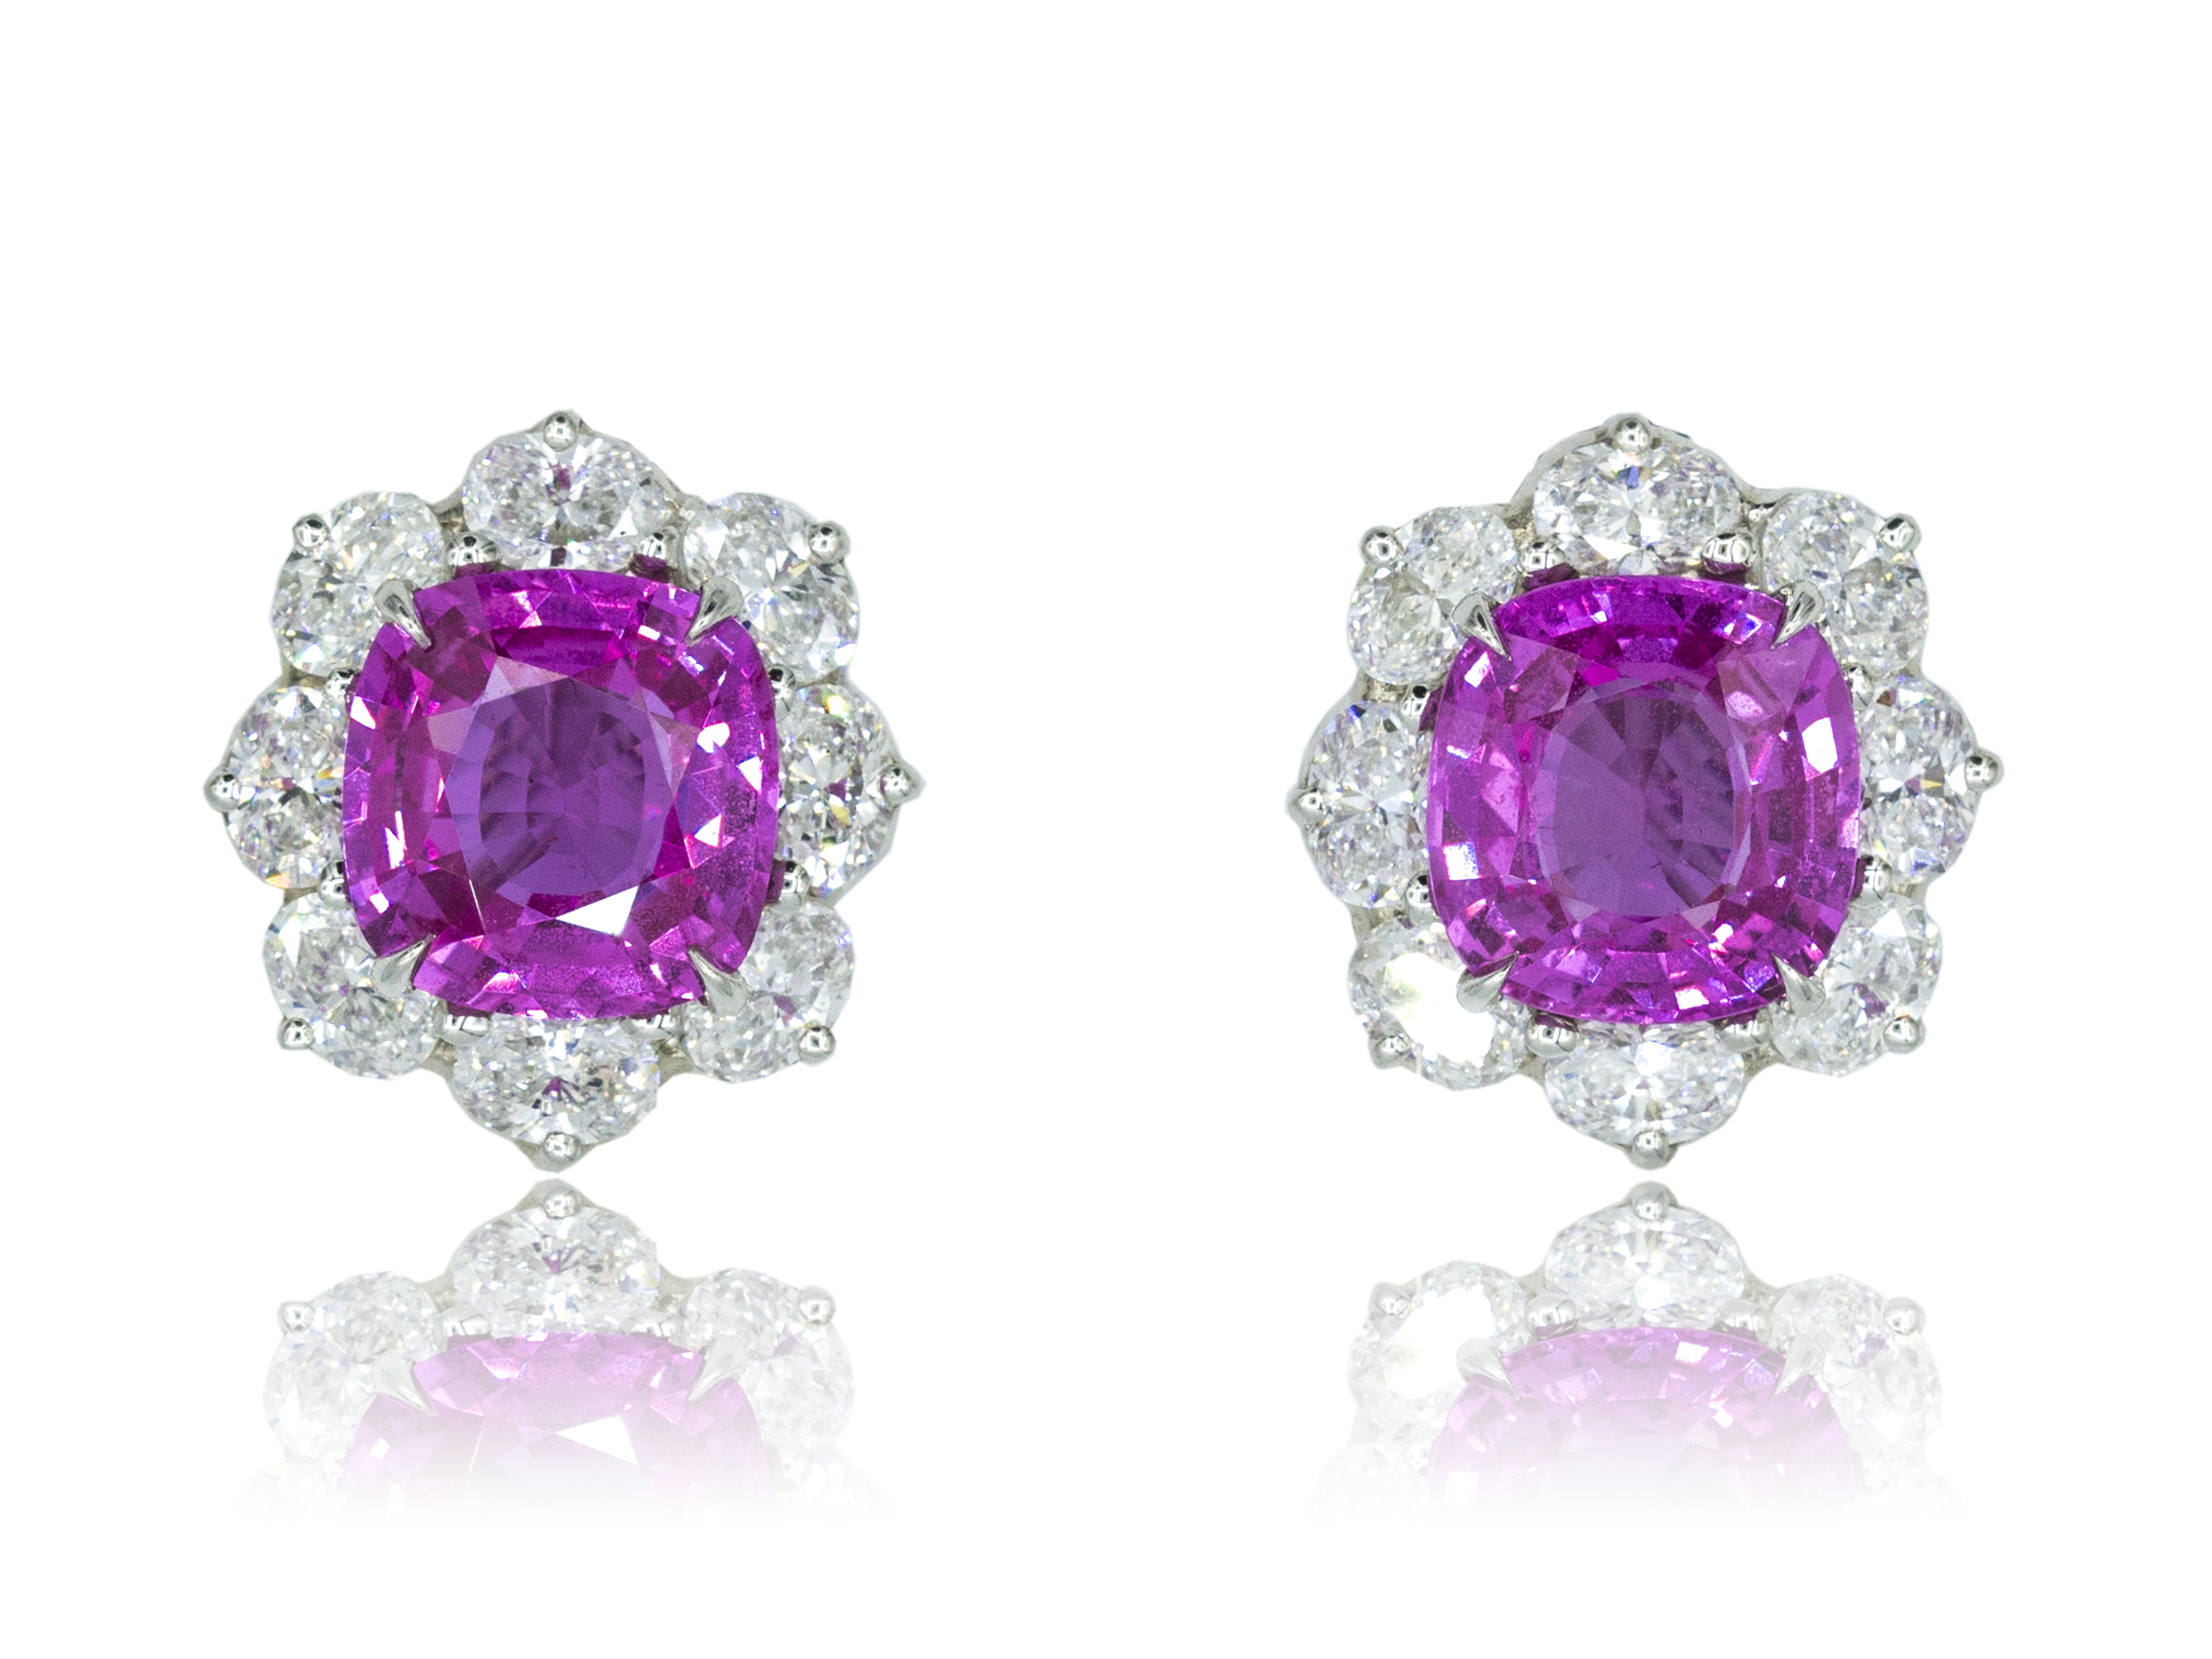 Floral pink sapphire and diamond earrings